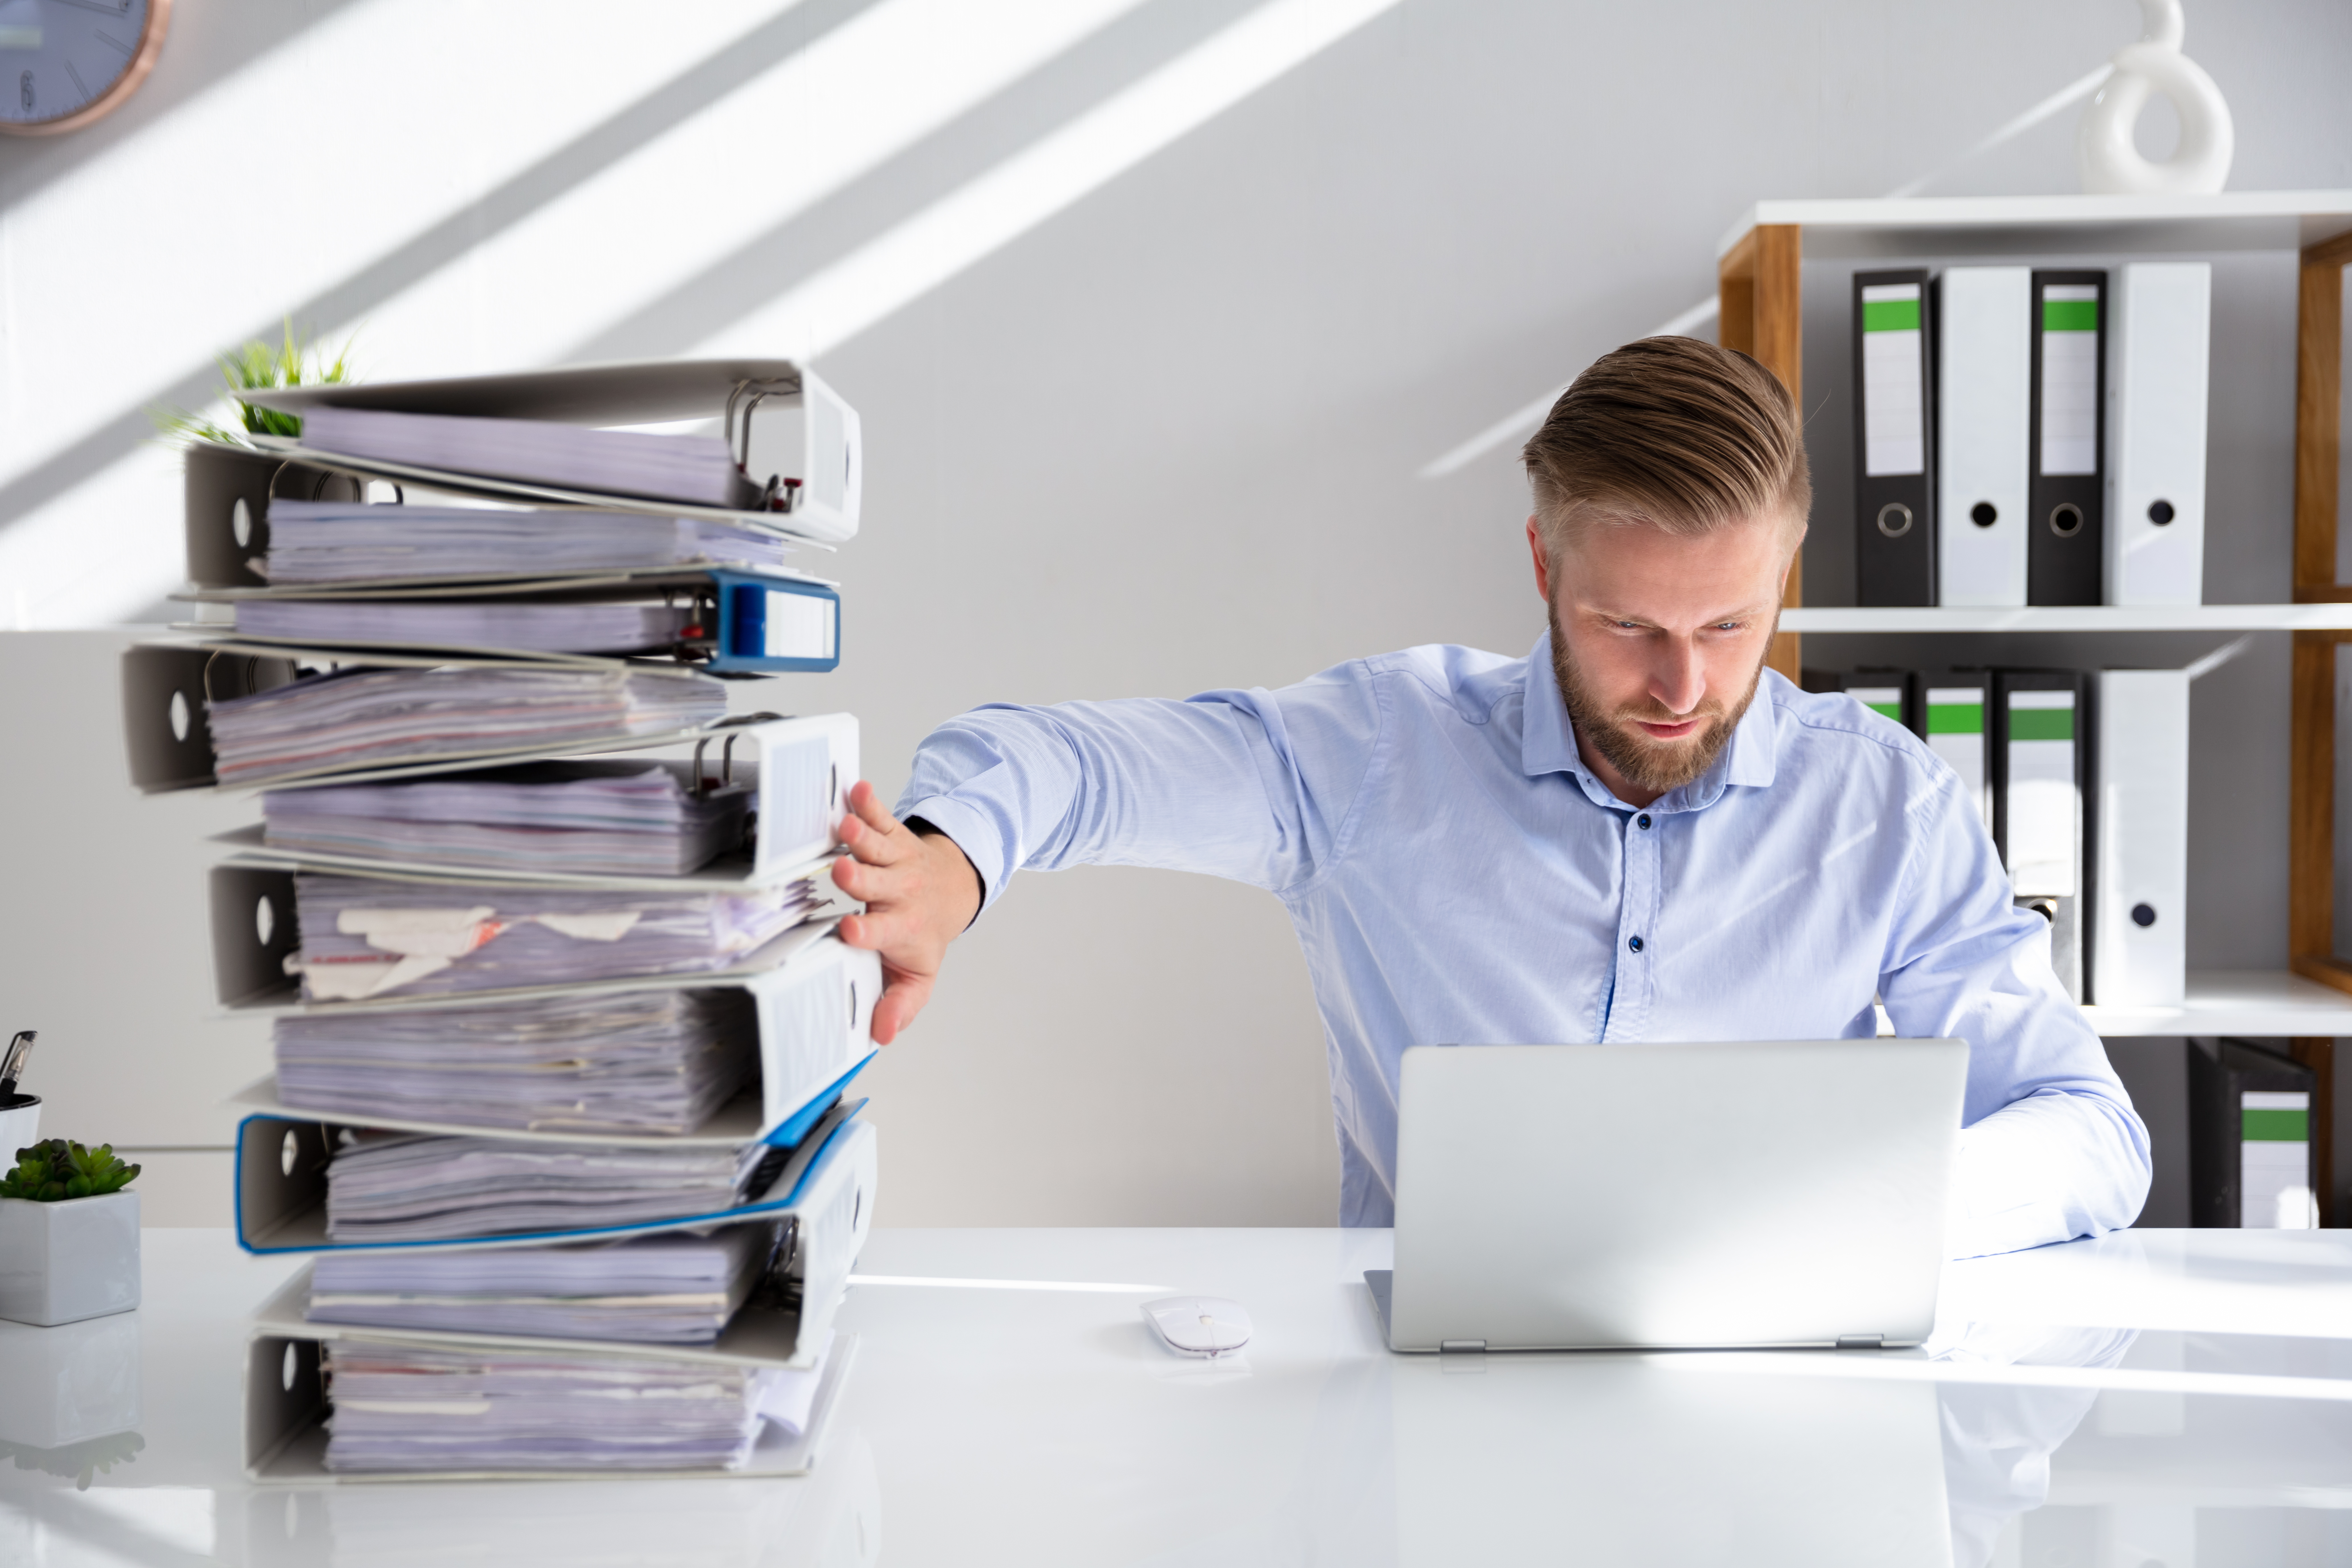 Photograph of a man typing on a laptop and pushing away a large stack of binders full of paper